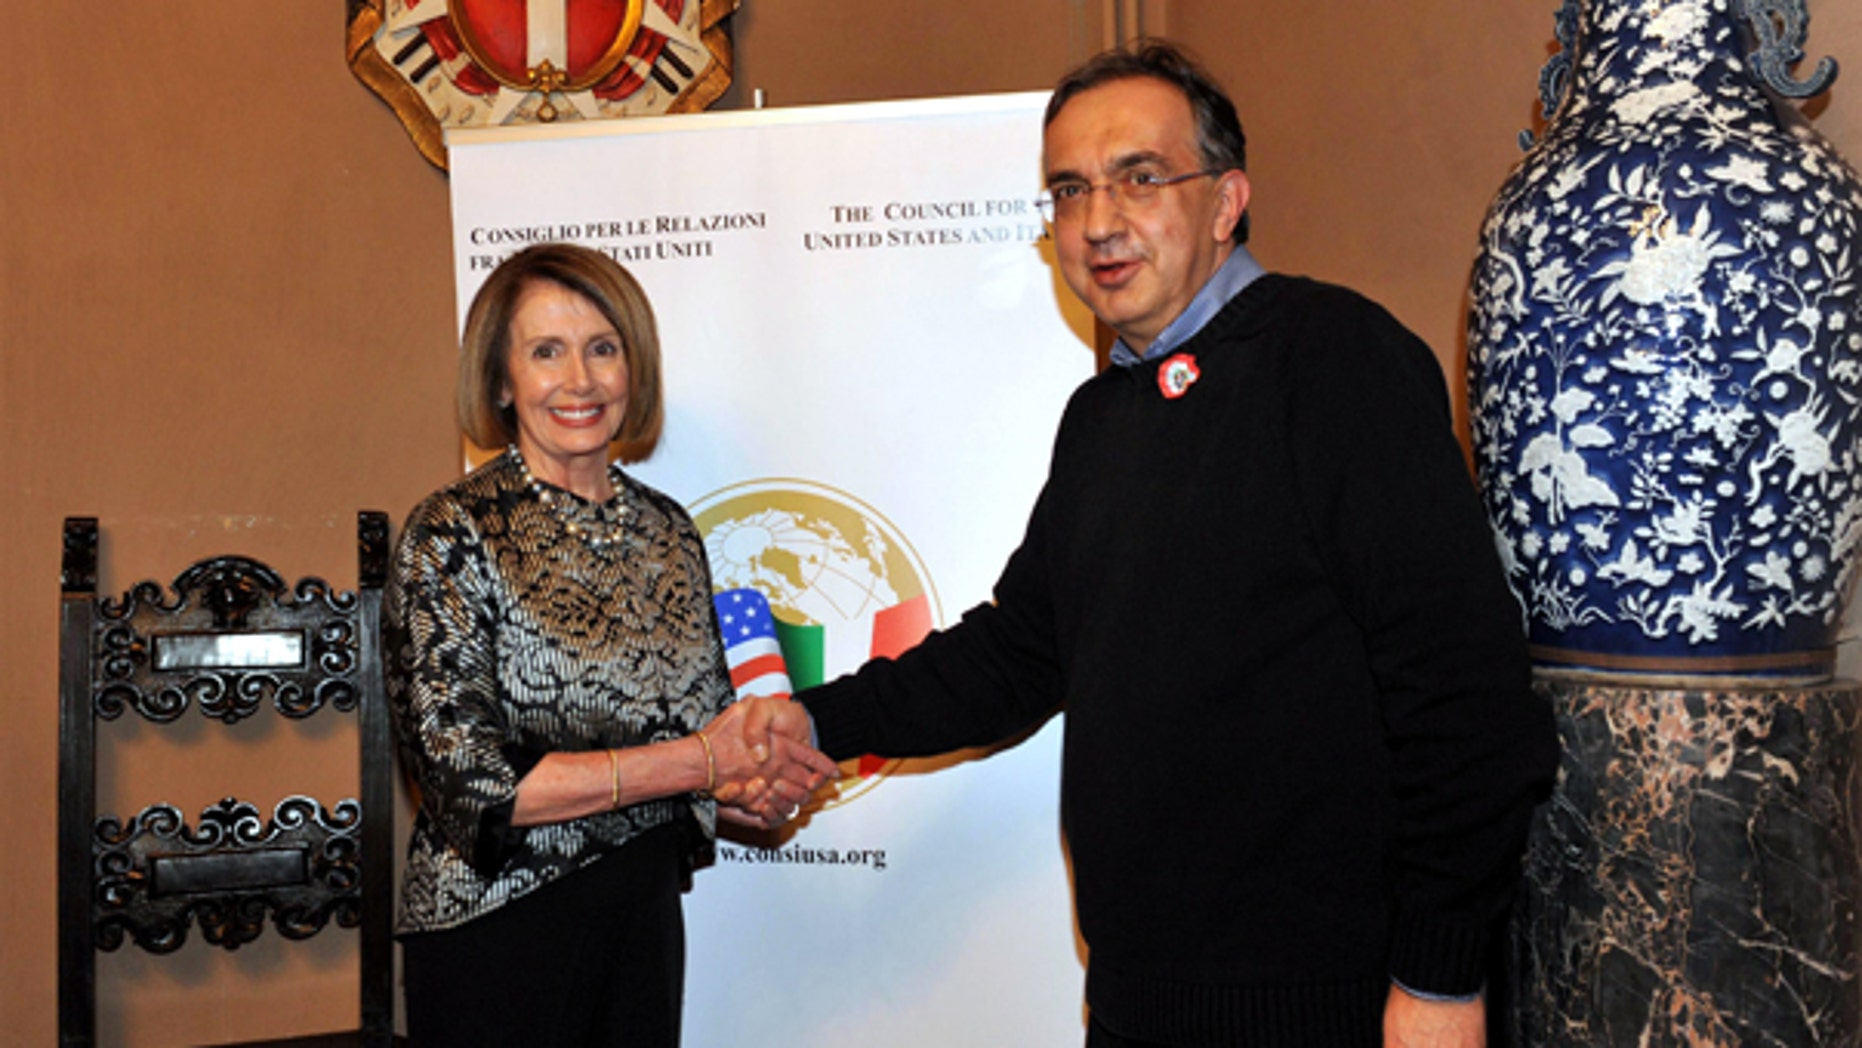 Friday: House Minority Leader Nancy Pelosi shakes hands with Sergio Marchionne, CEO of Fiat S.p.A. and Chrysler Group LLC, on the occasion of the annual dinner of the Council for the United States and Italy, in Rome.